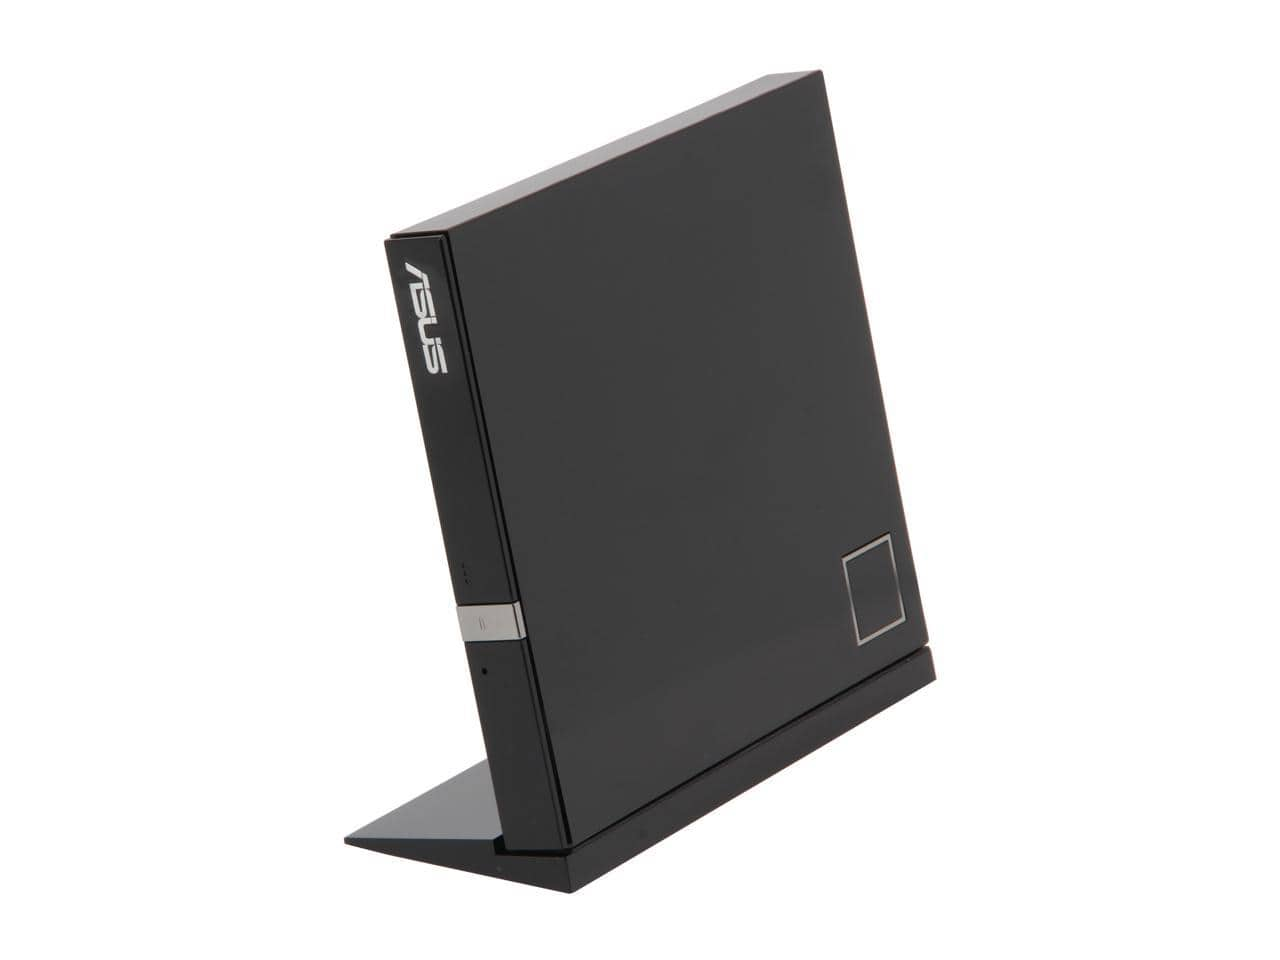 Asus 6x Portable USB 2.0 External Blu-Ray Re-Writer with BDXL Support for $36.99 AR + Free Ship @ Newegg